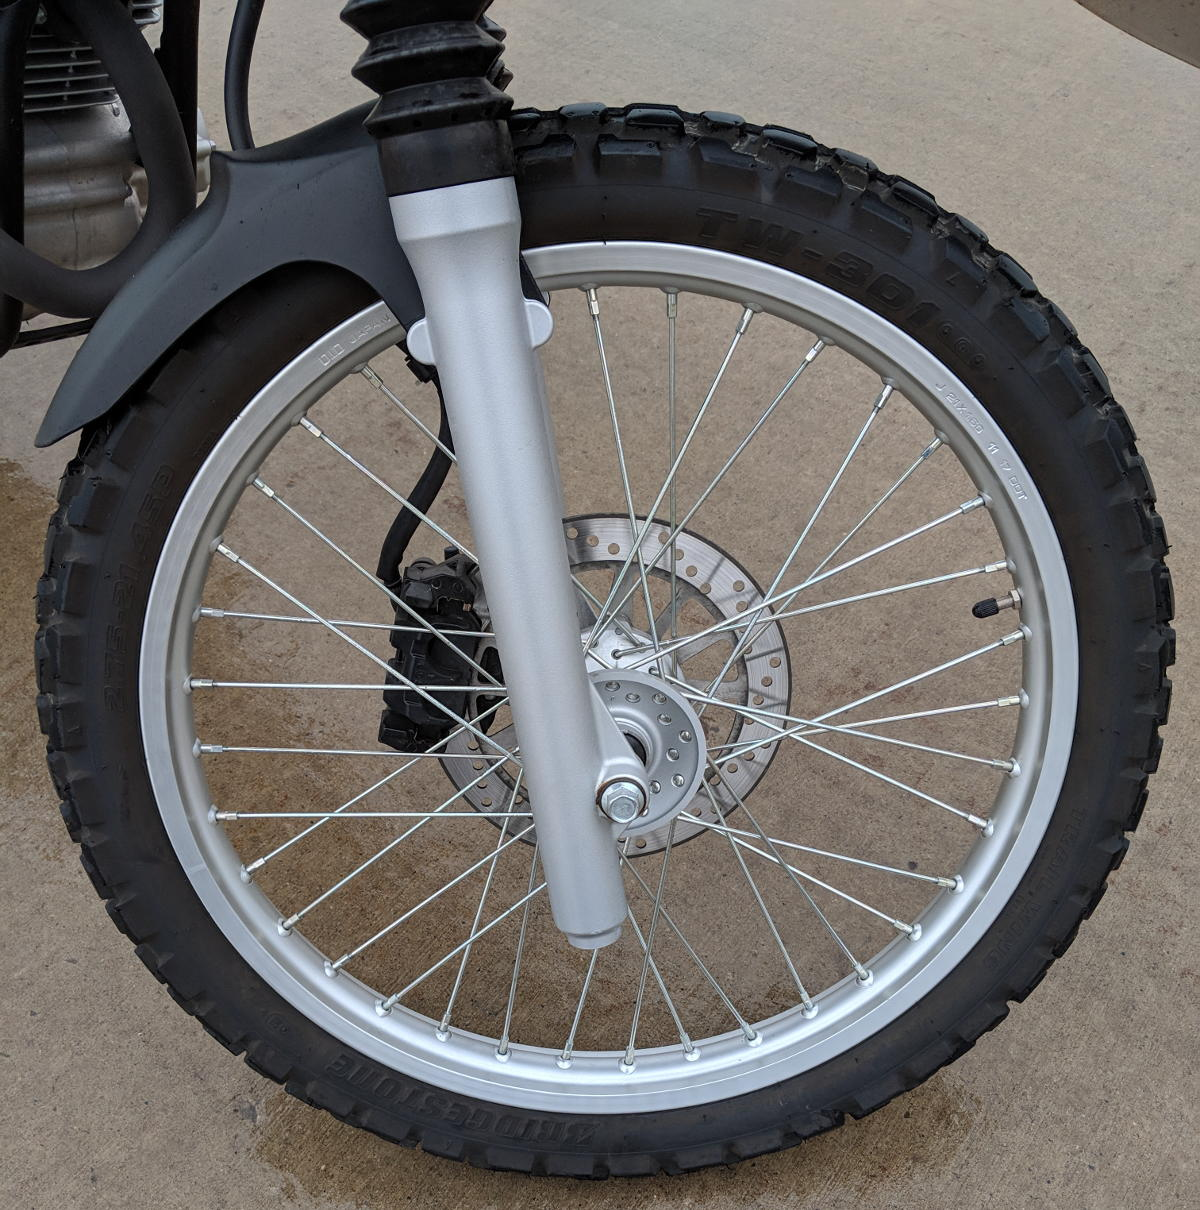 A spoked/sprocket motorcycle rim